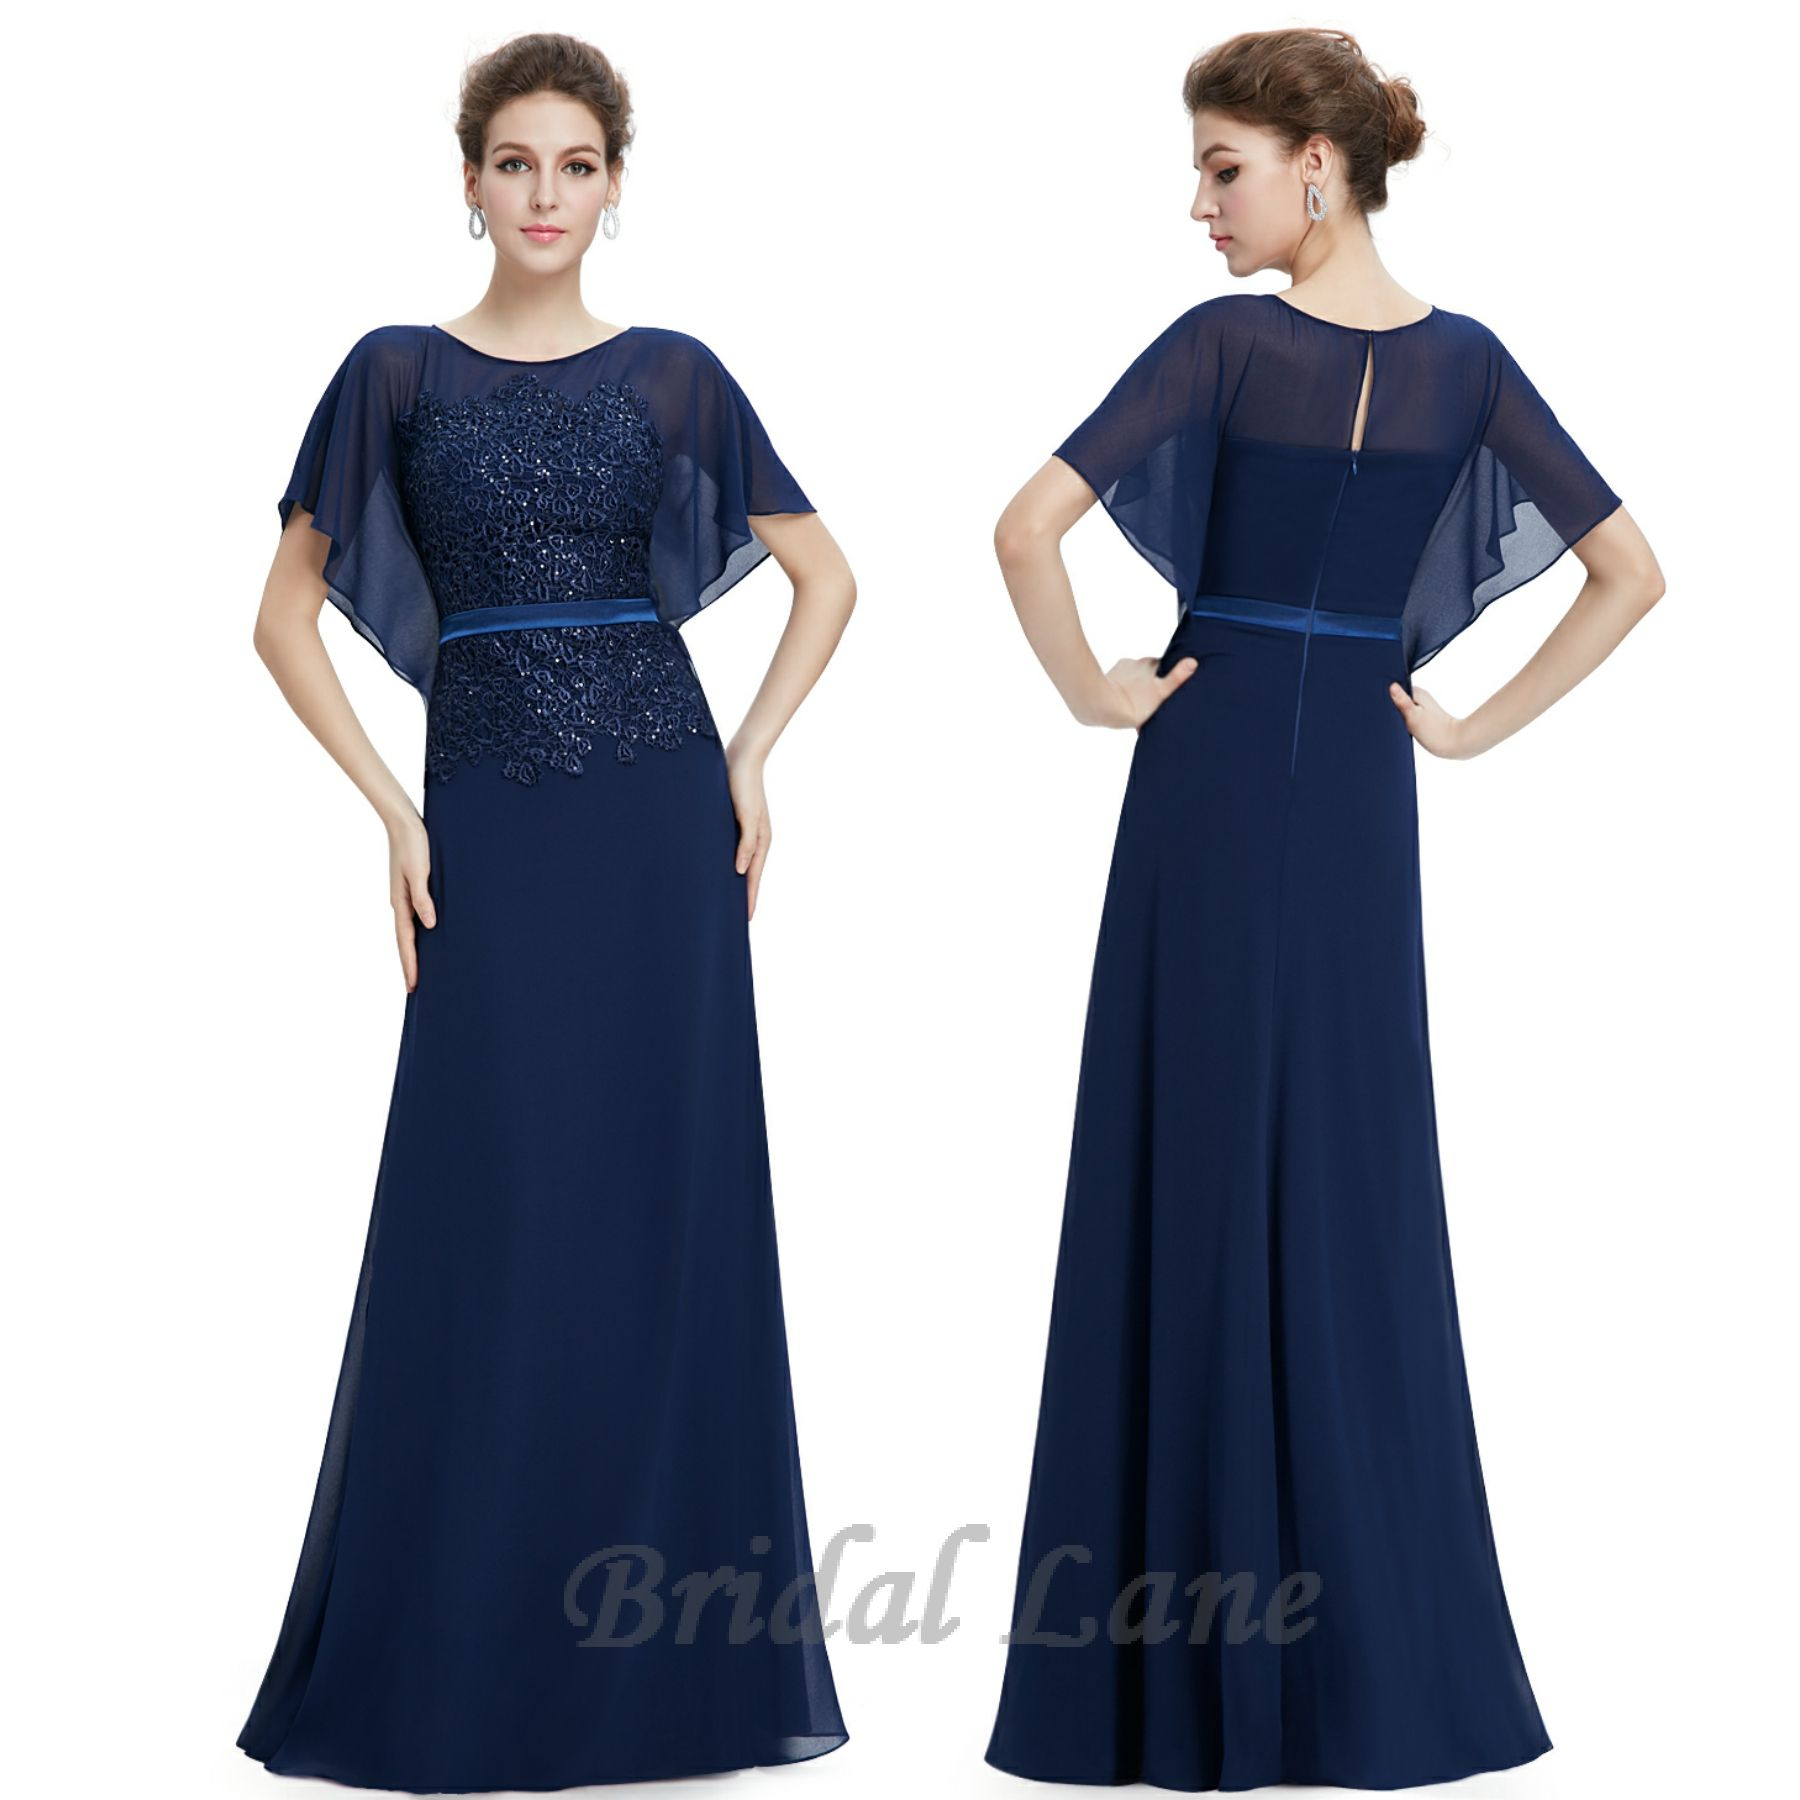 Matric dance dresses matric farewell dresses evening dresses pictures - Navy Blue Bat Sleeve Evening Dress Evening Dresses For Matric Ball Matric Farewell In